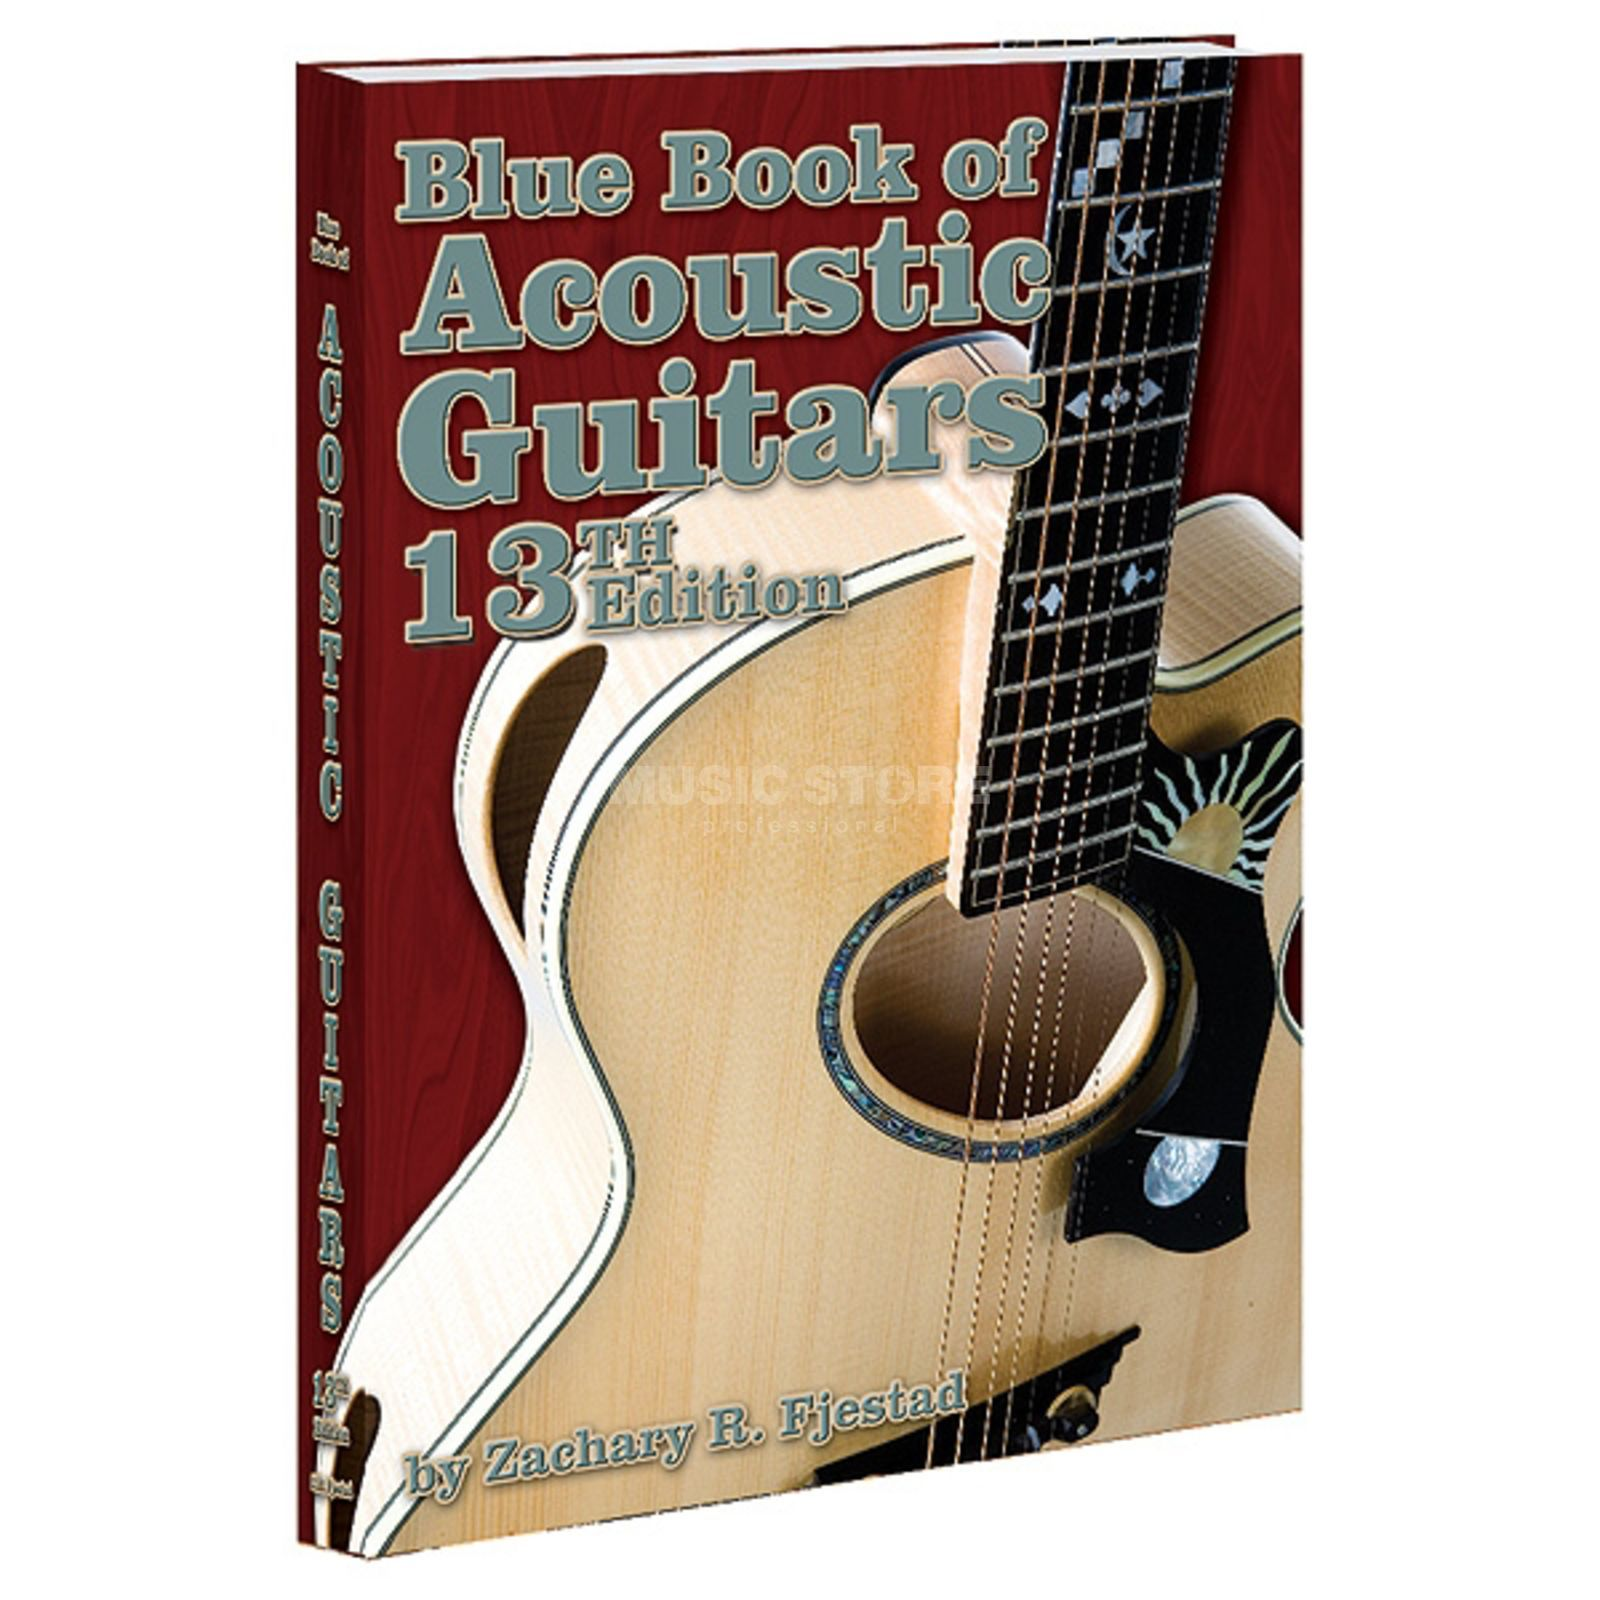 Alfred Music Blue Book of Acoustic Guitars Zachary R. Fjestad (13th Ed.) Produktbillede